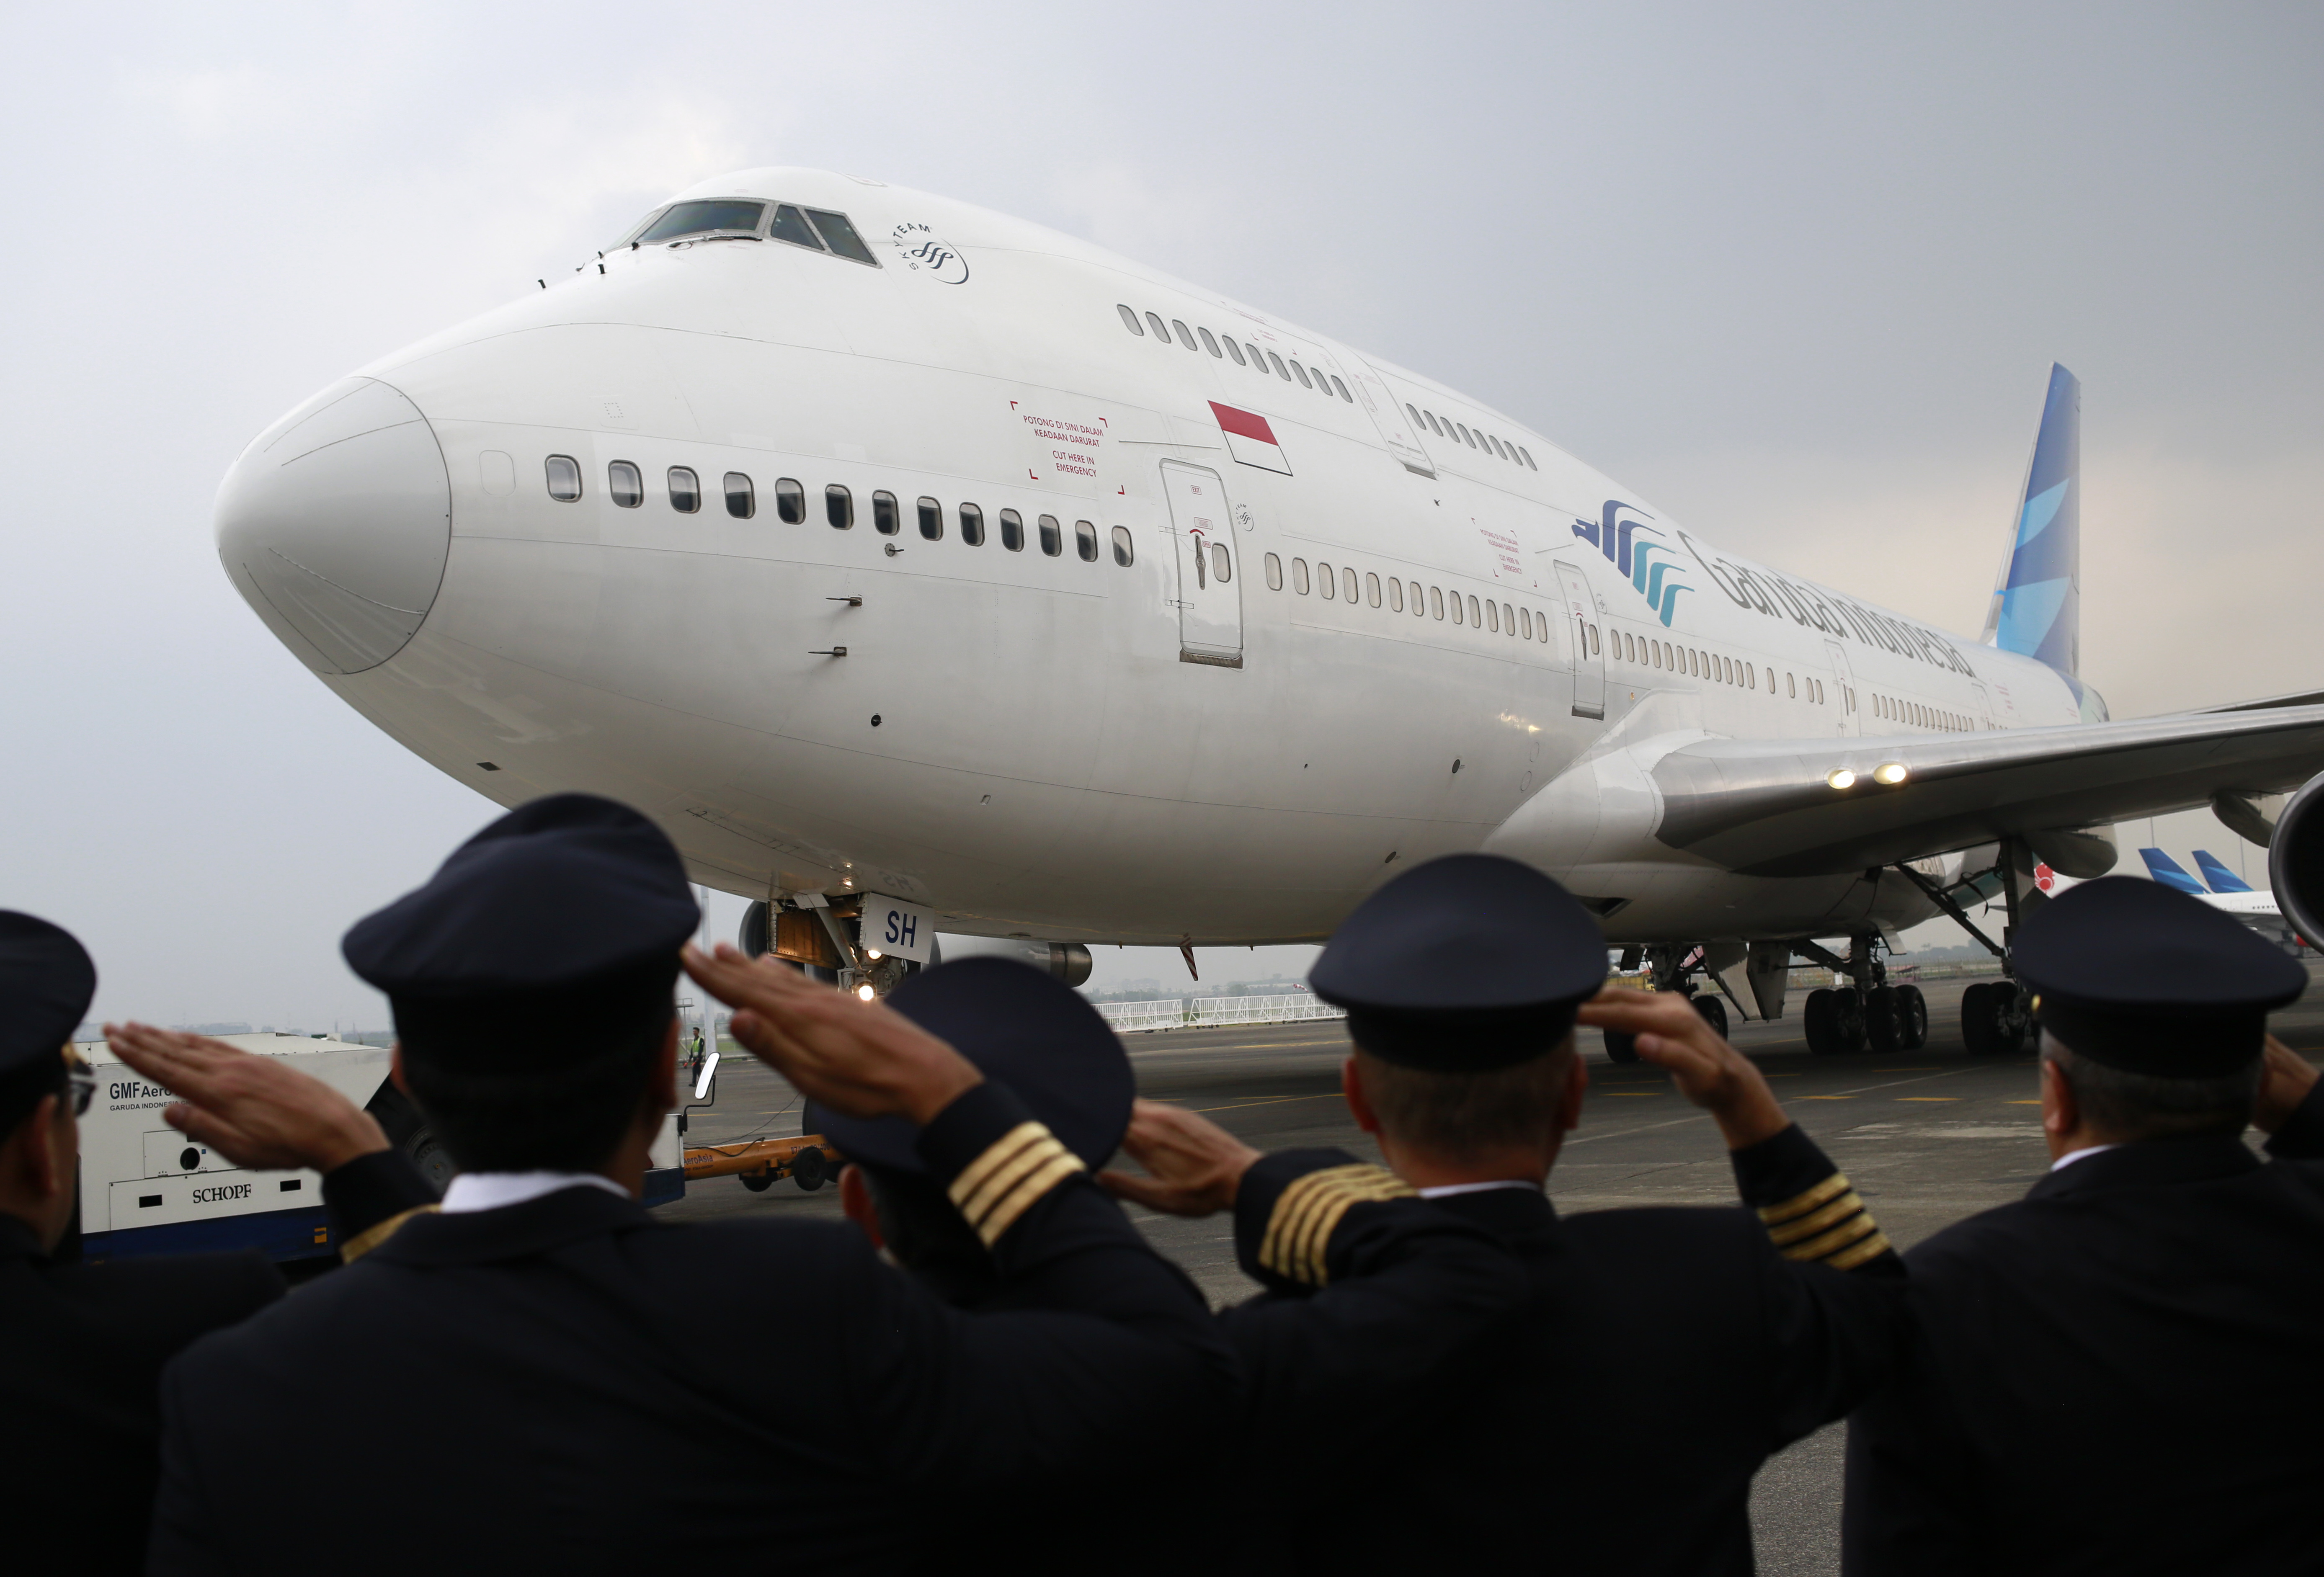 Garuda Indonesia bid farewell to the Boeing 747